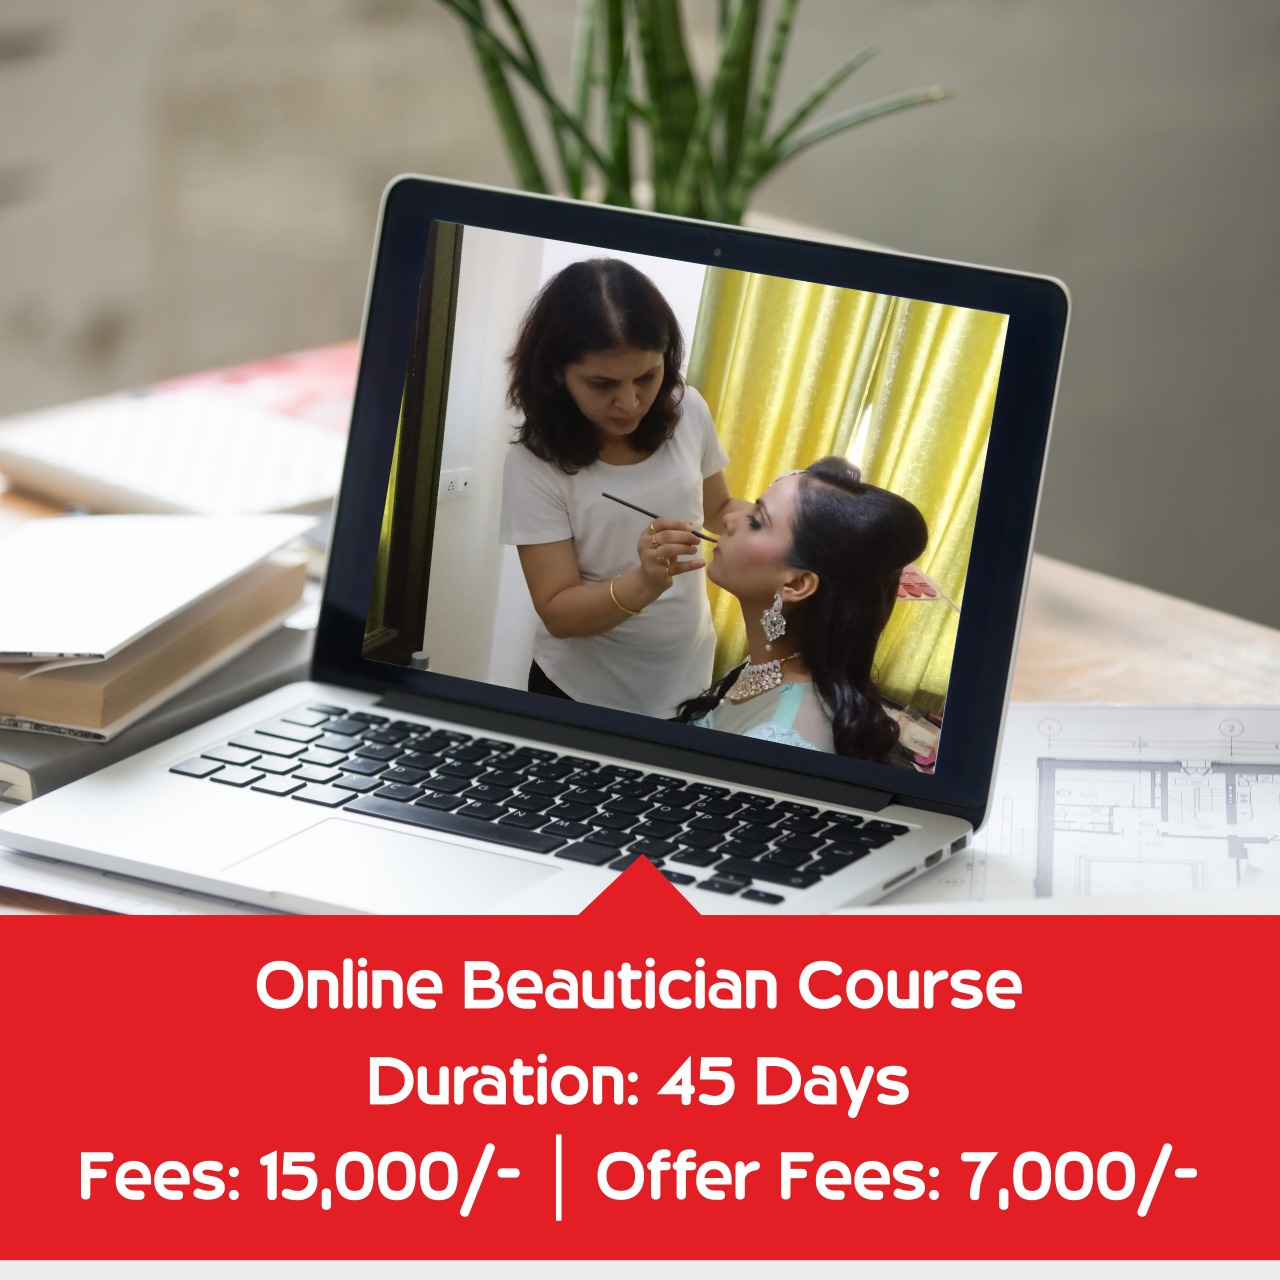 Online Beautician Course